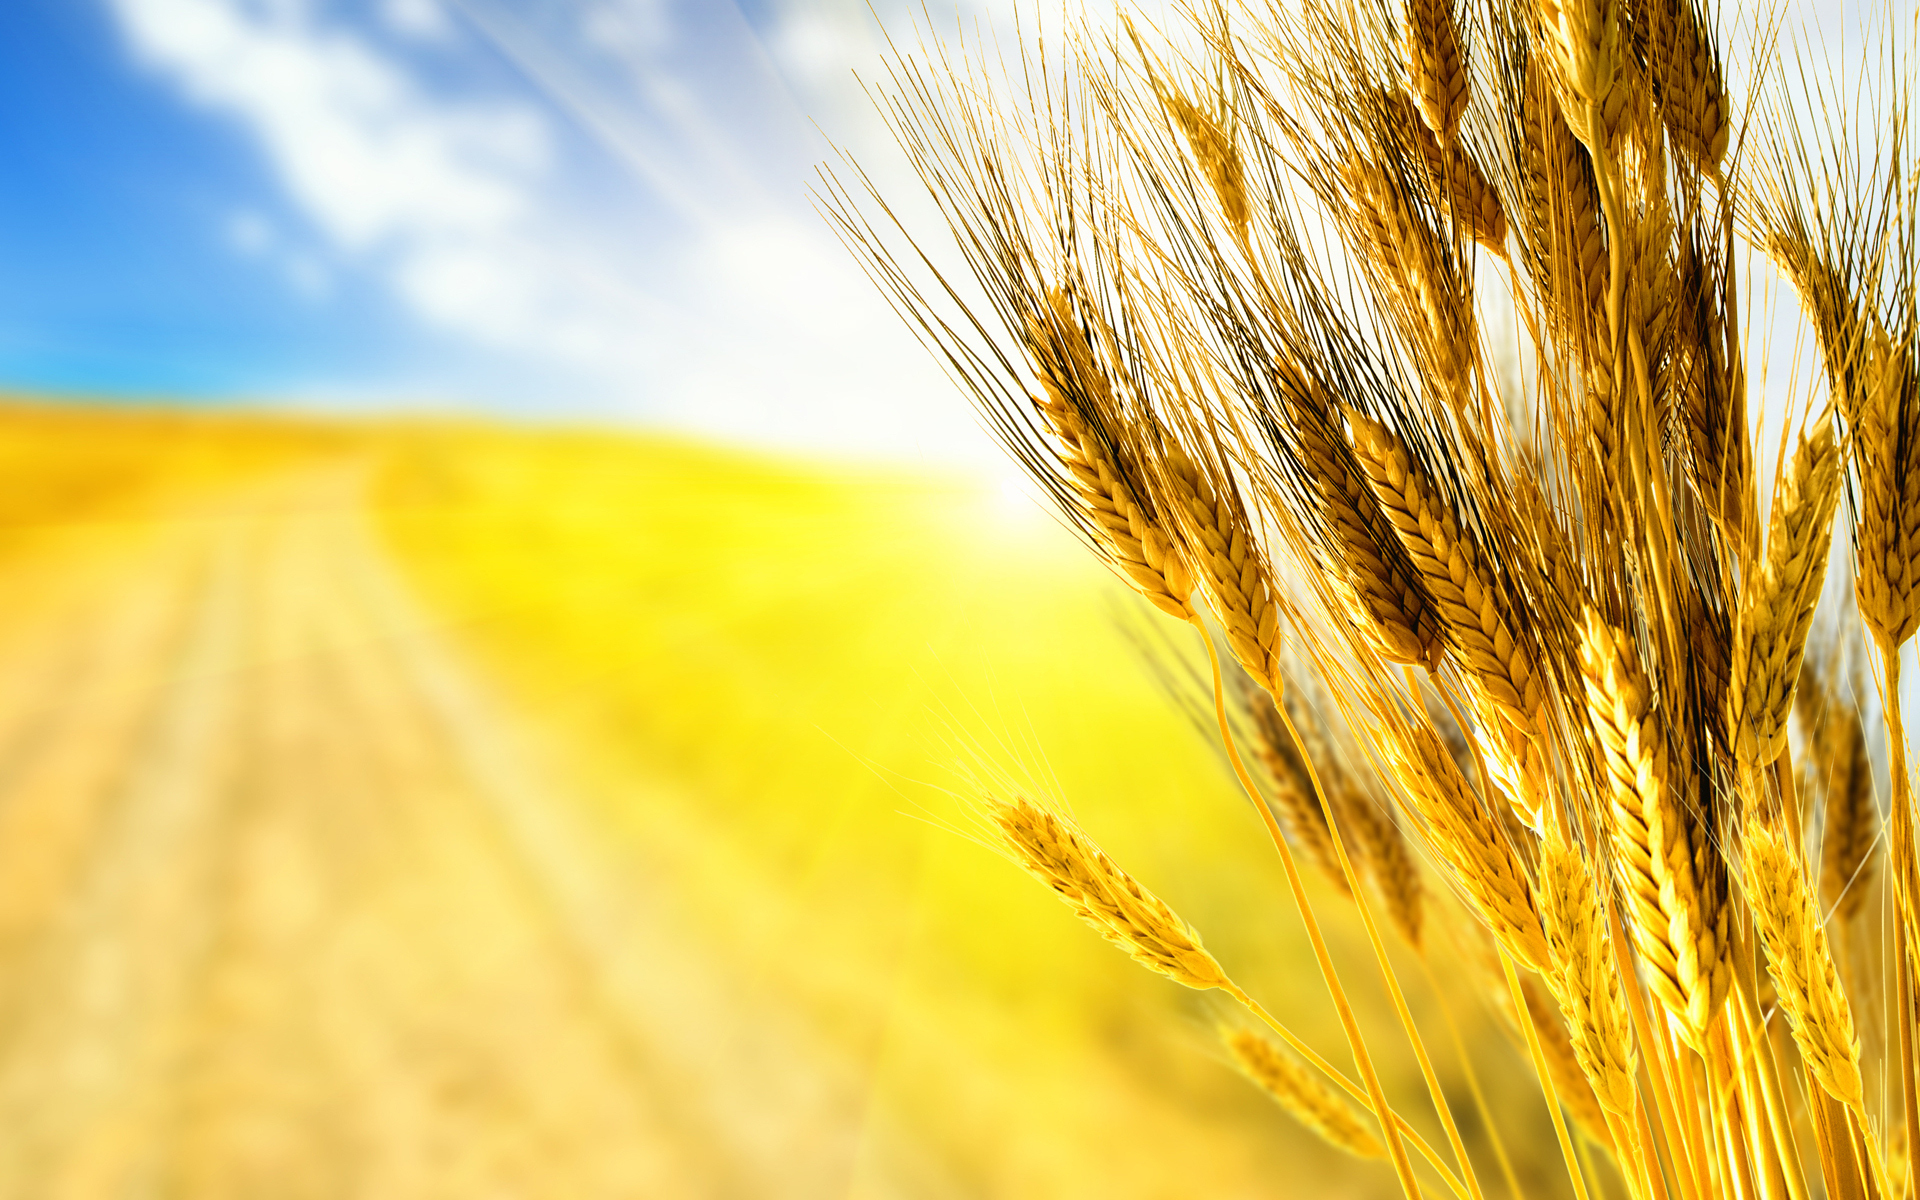 208 Wheat Wallpapers | Wheat Backgrounds Page 4